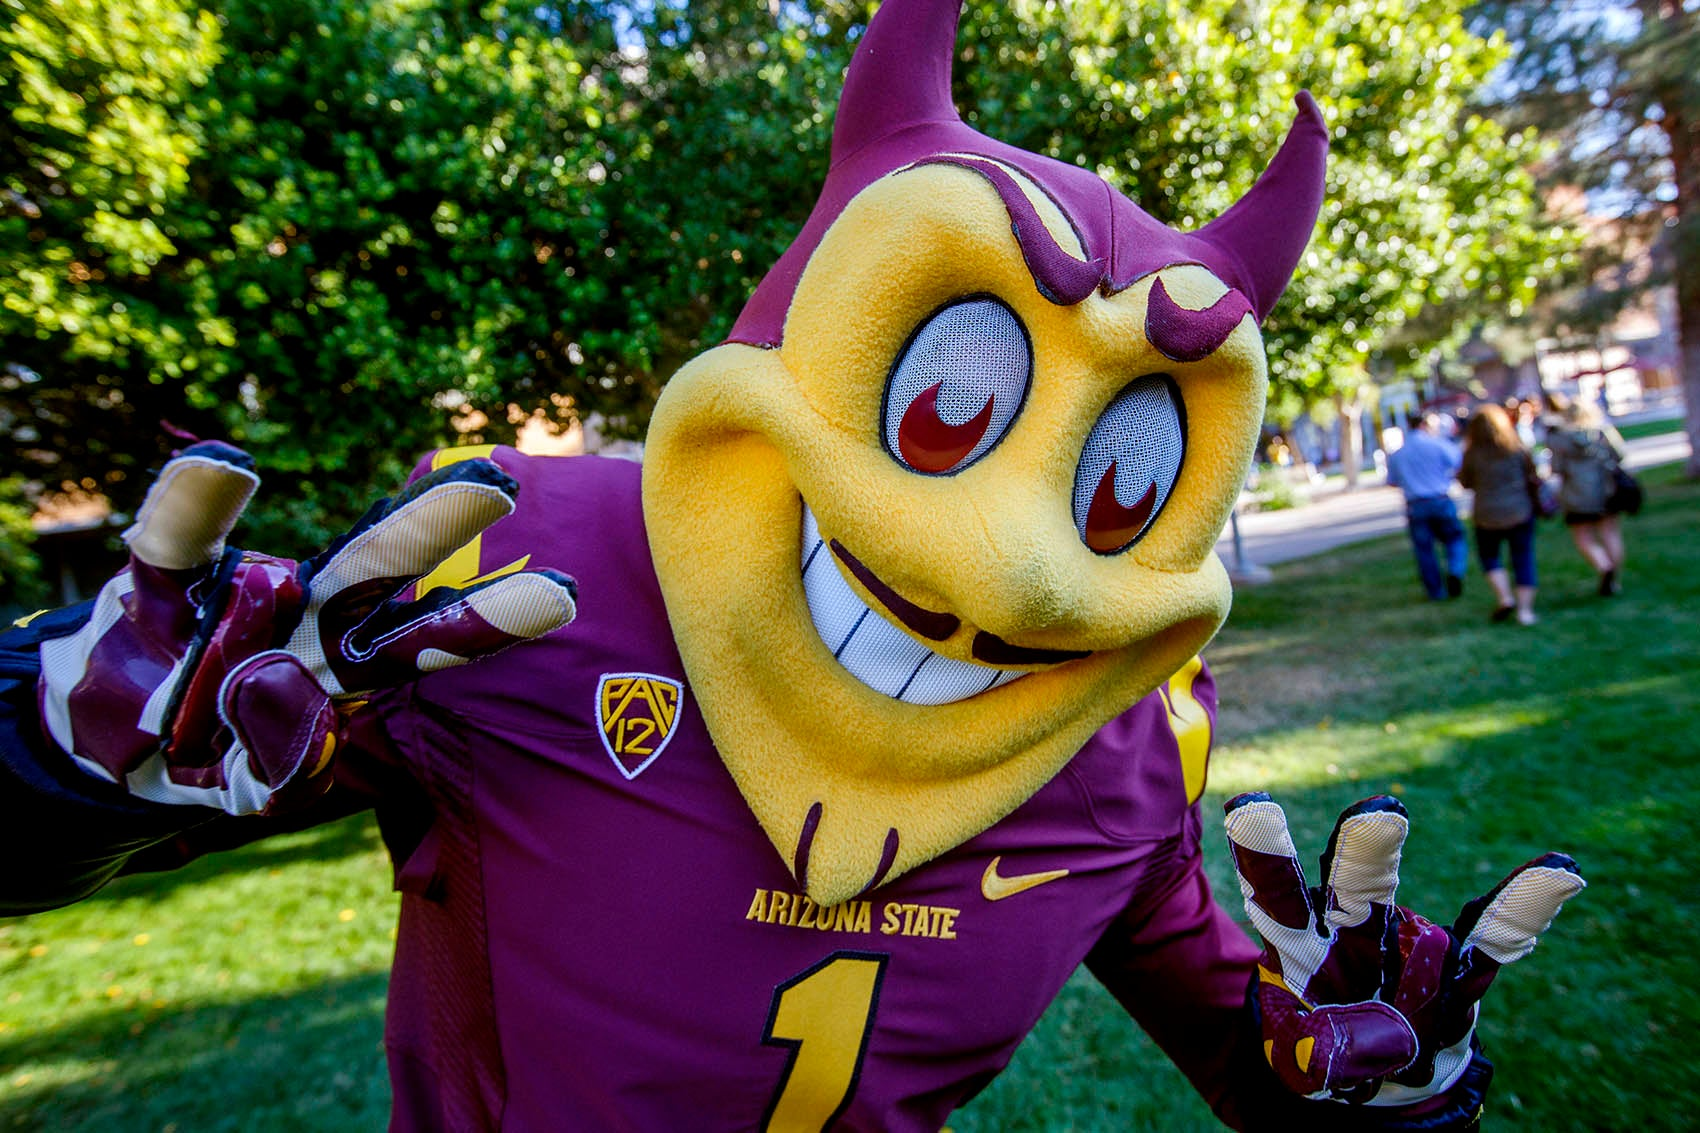 ASU Sparky Slam will be held at ASU's West campus Feb 3 2018